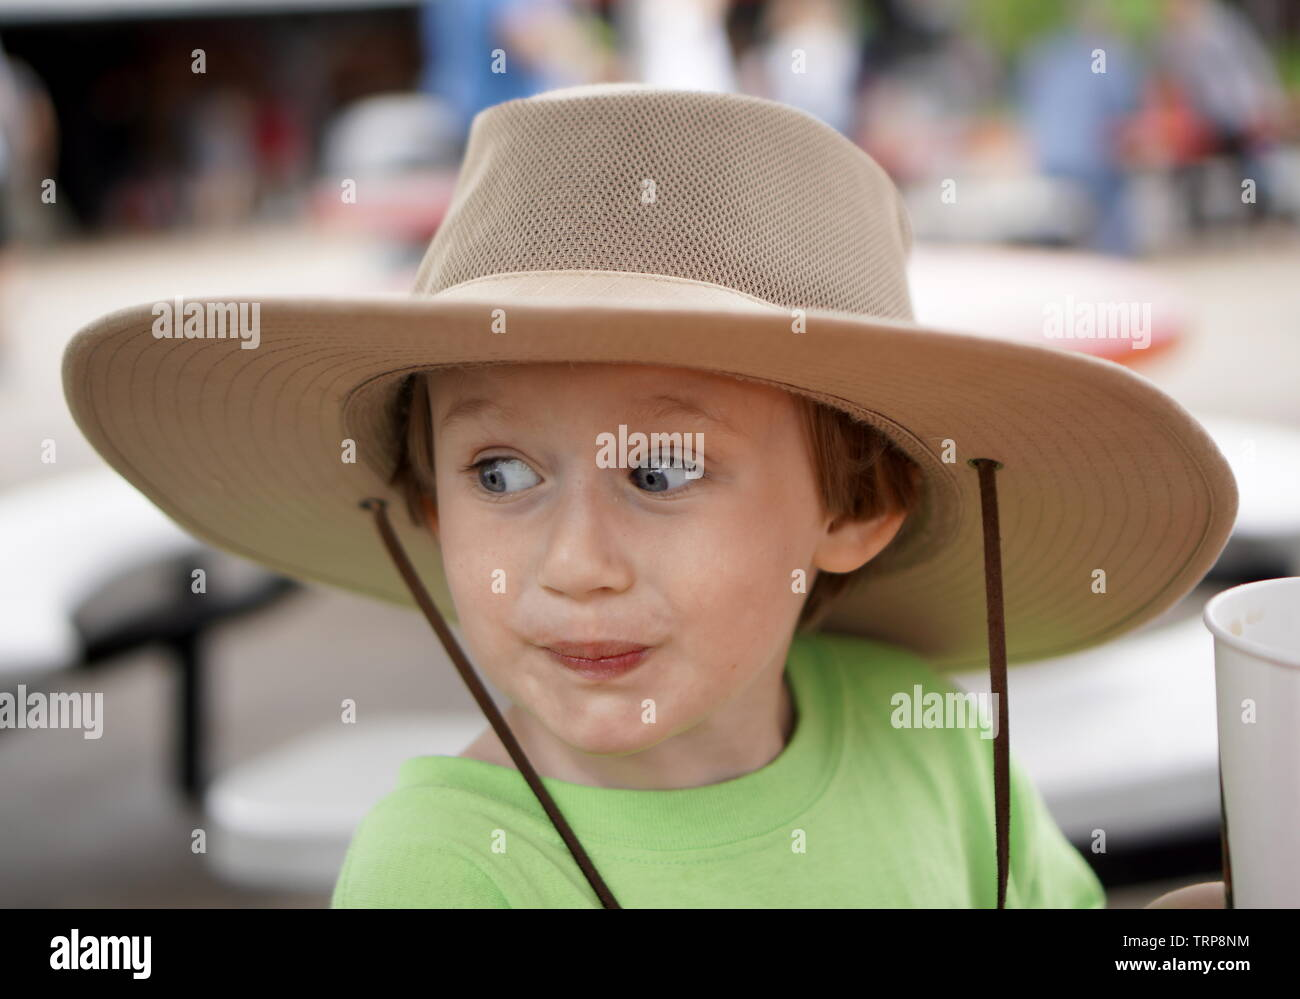 young girl with attitude and a hat - Stock Image